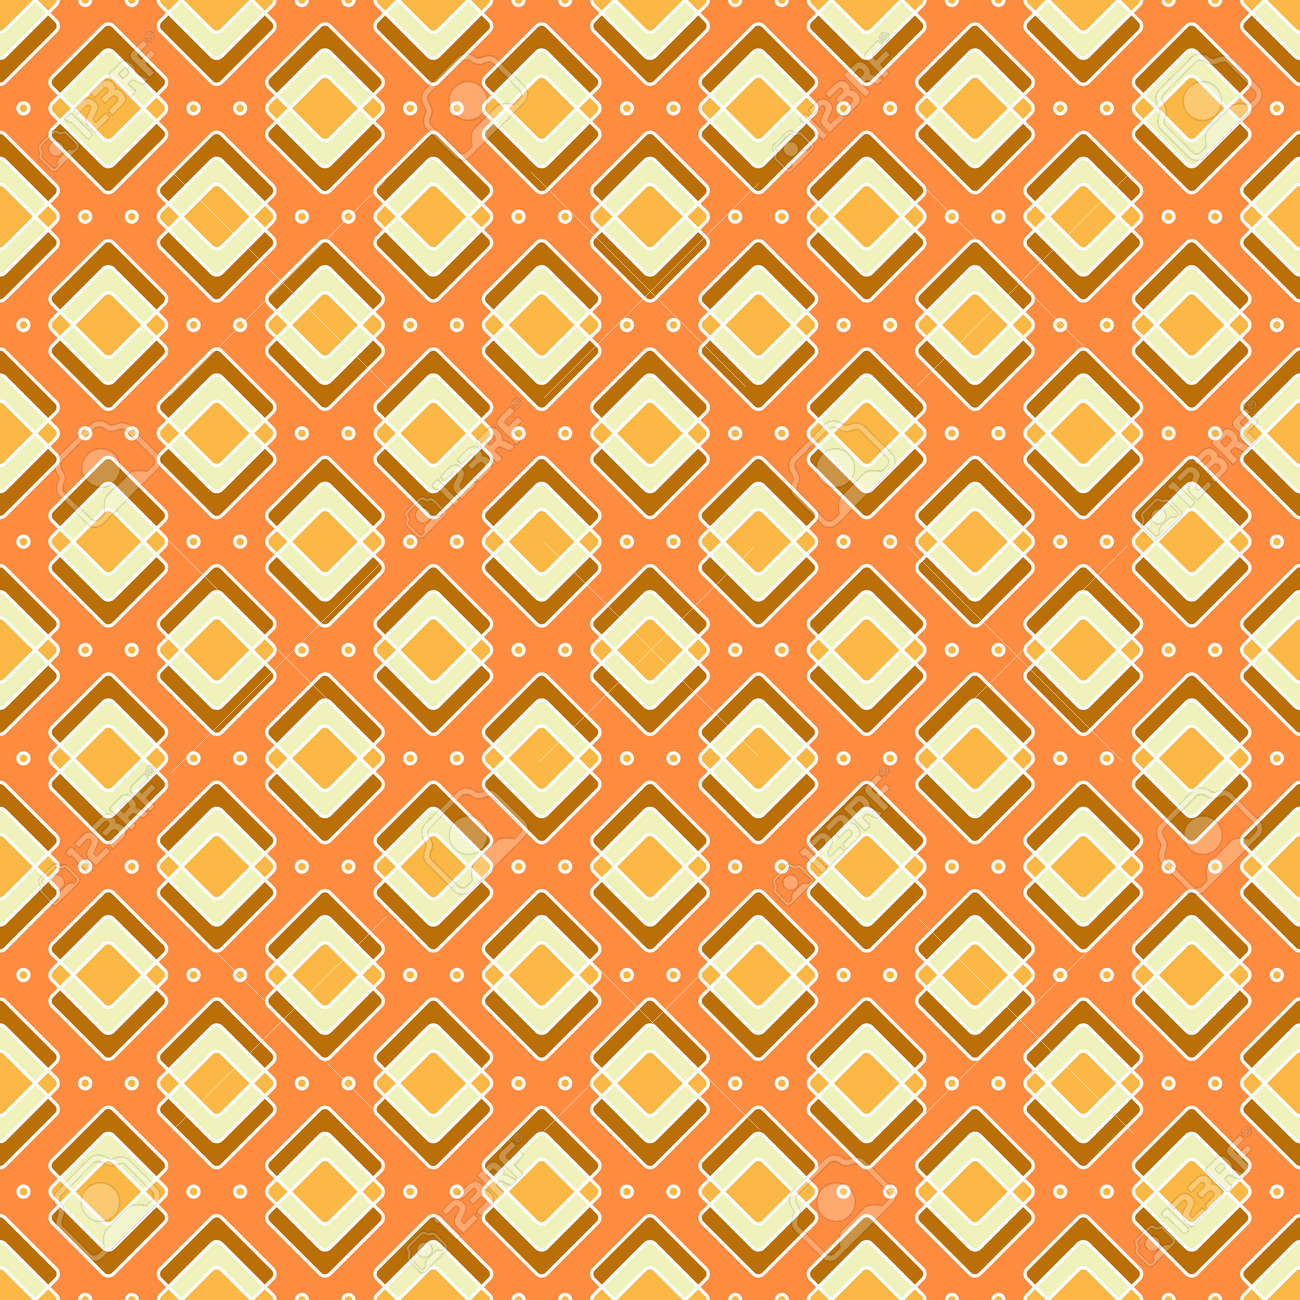 Rhombuses seamless pattern in yellow-orange colors. Bright geometric print with orange background. Great for decorating fabrics, textiles, gift wrapping, printed matter, interiors, advertising. - 162511360